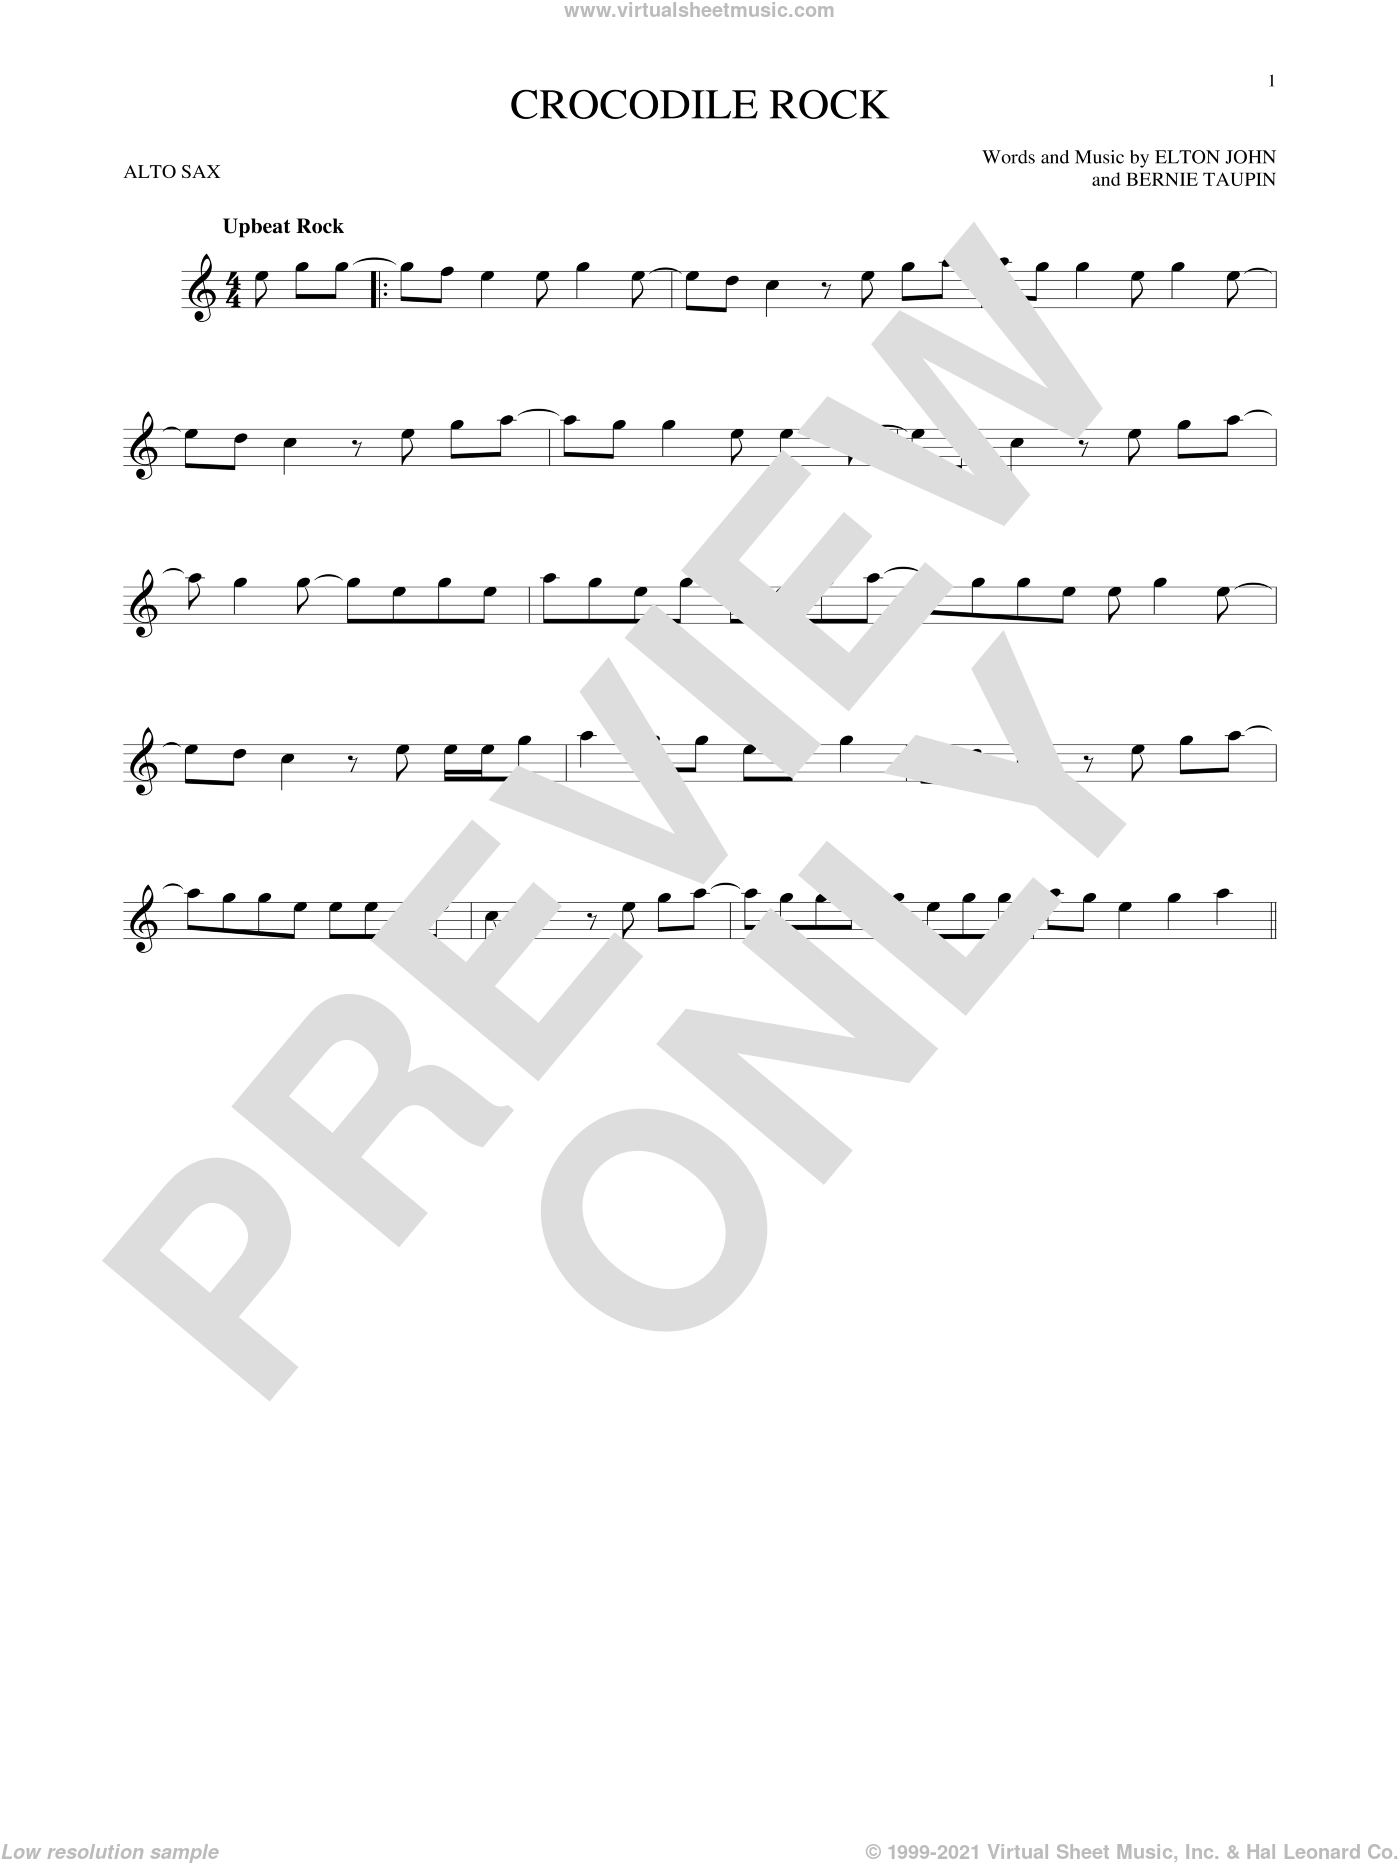 Crocodile Rock sheet music for alto saxophone solo by Elton John and Bernie Taupin, intermediate skill level